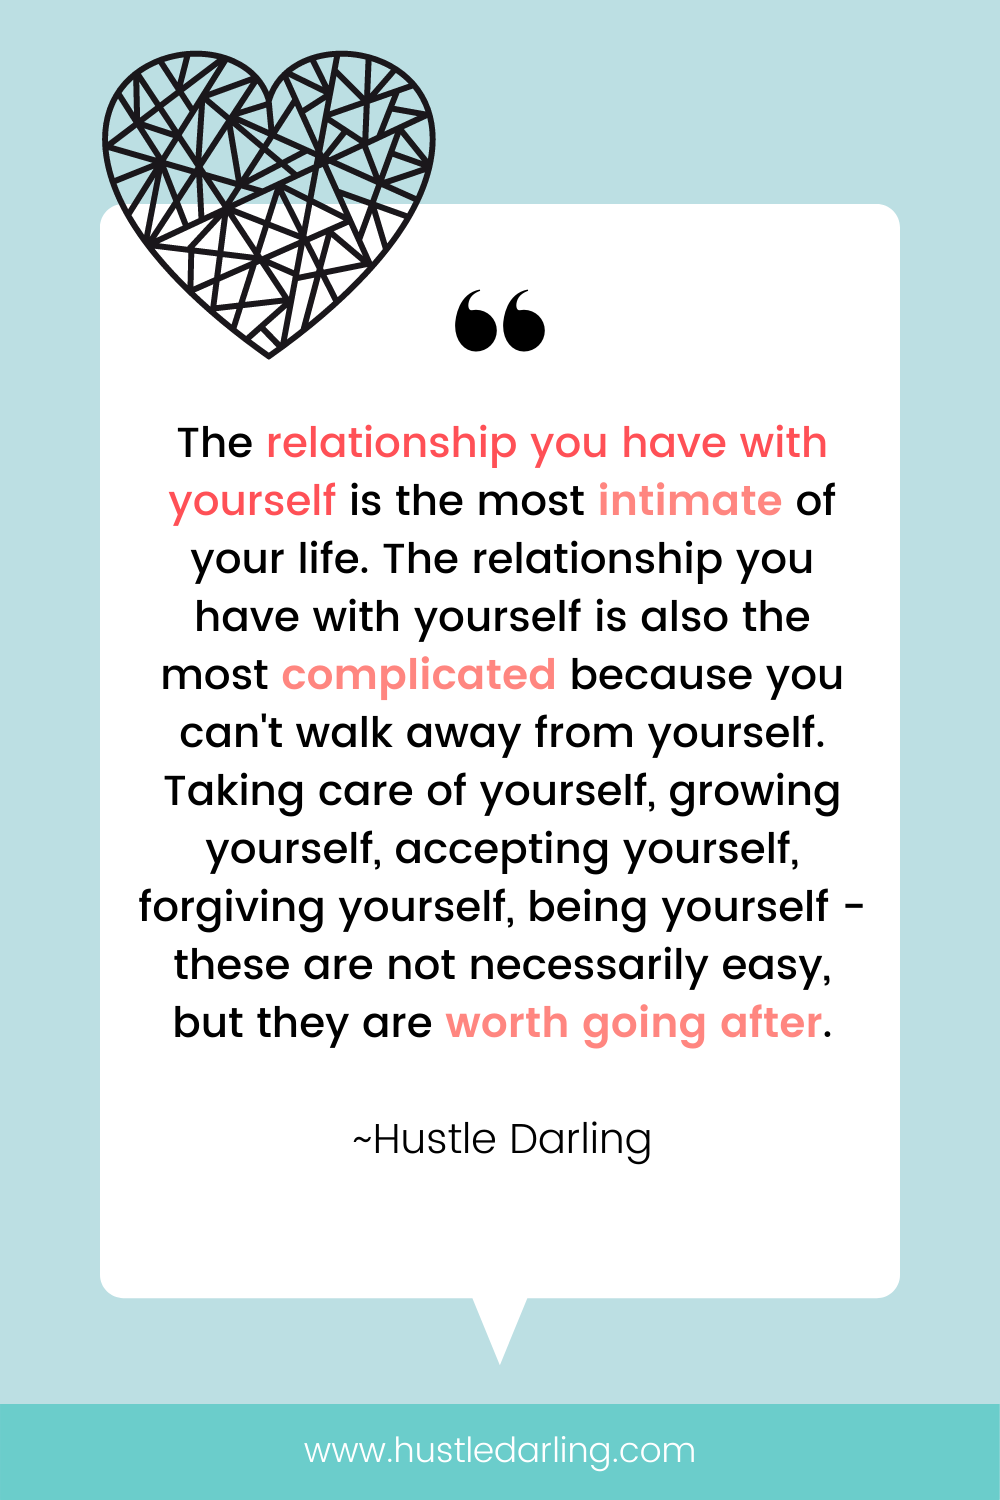 """A heart with geometric lines in the top corner of the image. On a light blue background is a white speech bubble with a large quotation mark at the top. Text underneath reads """"The relationship you have with yourself is the most intimate of your life. The relationship you have with yourself also is the most complicated because you can't walk away from yourself. Taking care of yourself, growing yourself, accepting yourself, forgiving yourself, being yourself - these are not necessarily easy, but they are worth going after. ~ Hustle Darling"""""""